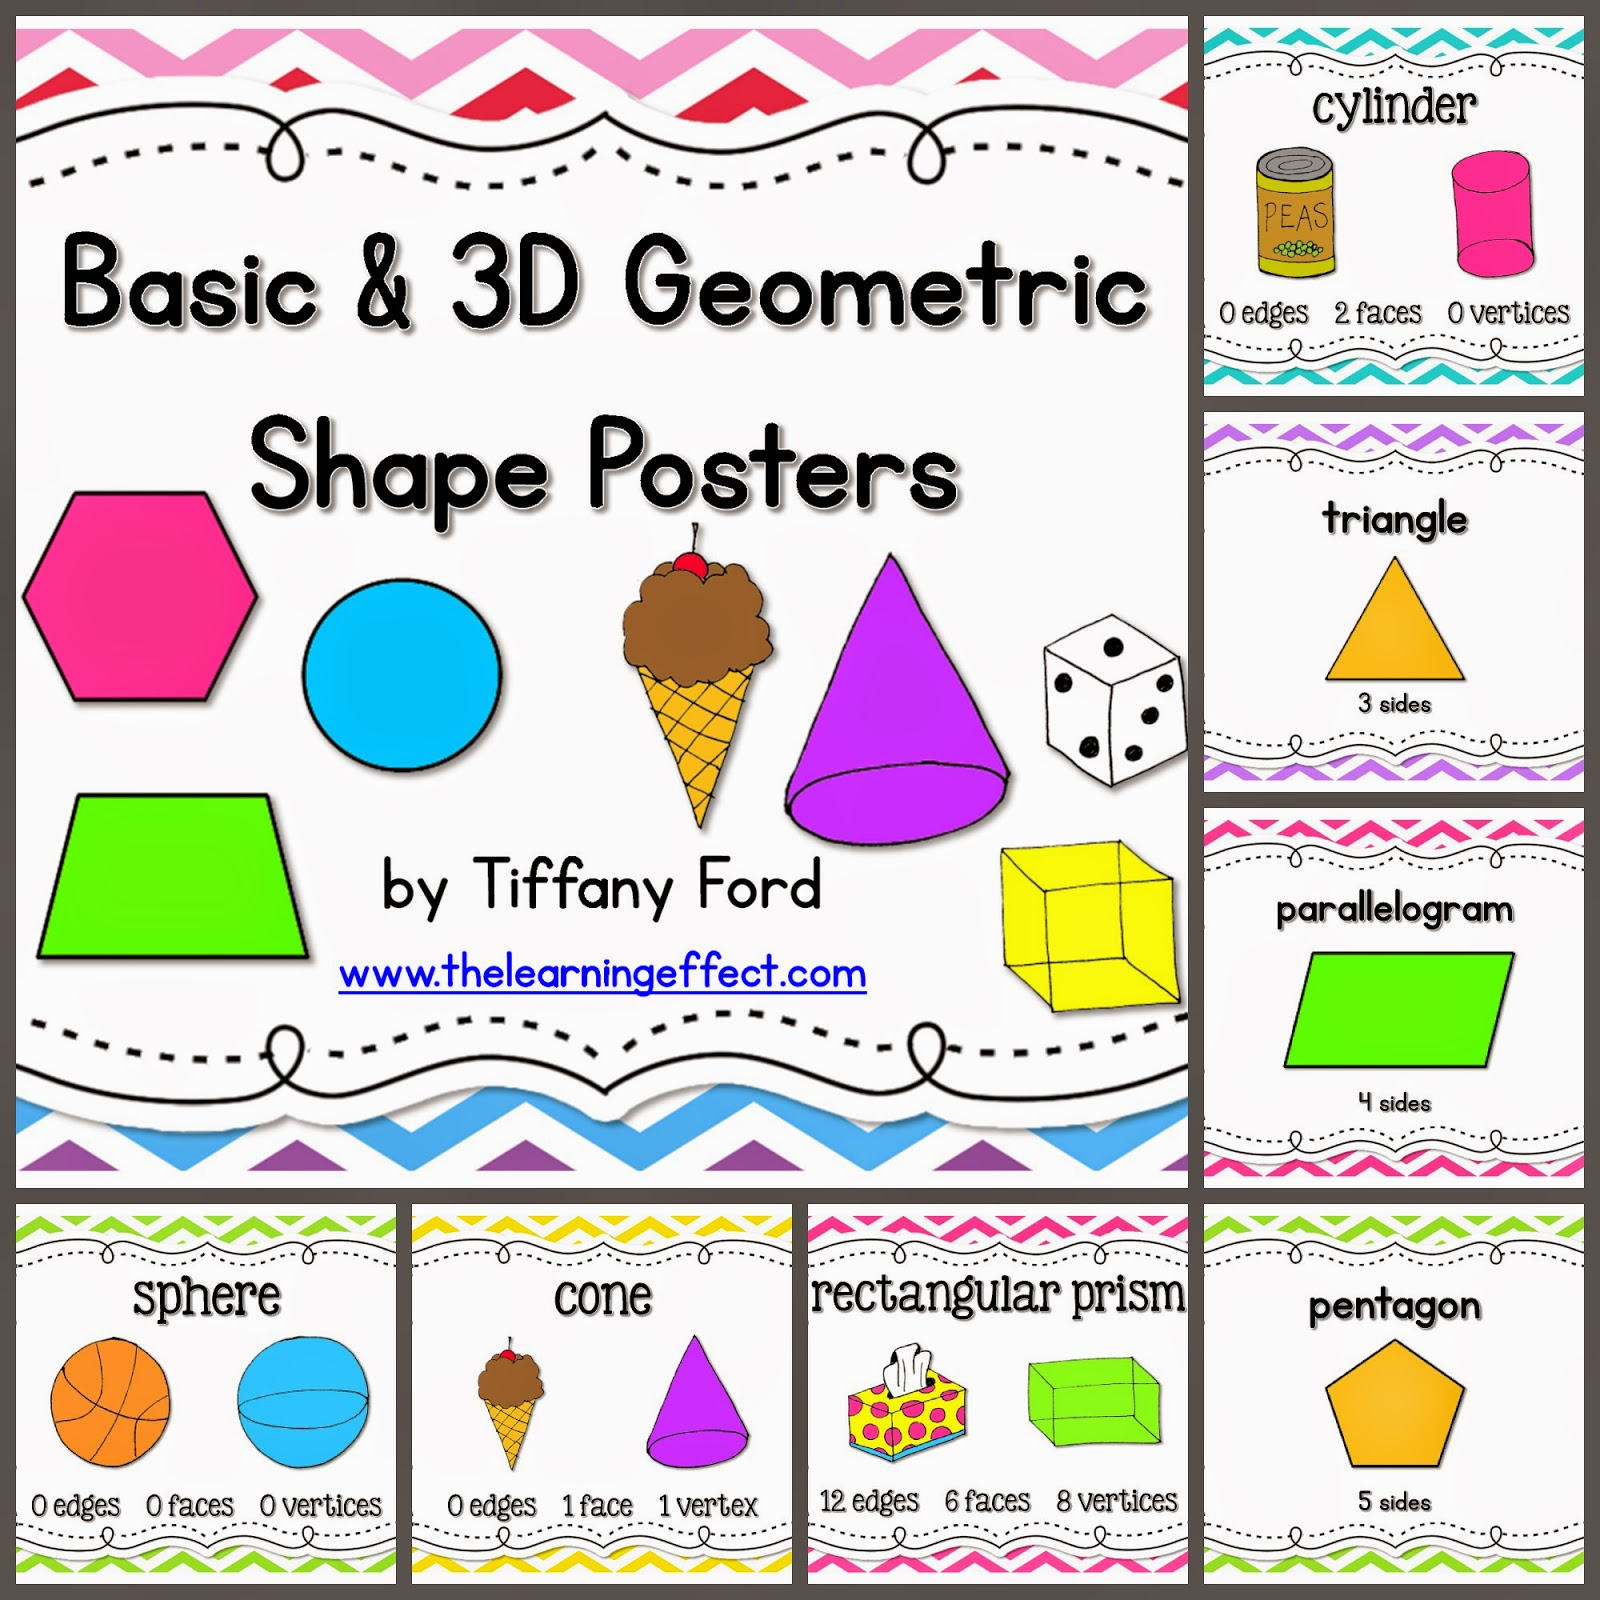 https://www.teacherspayteachers.com/Product/Basic-3D-Geometric-Shape-Posters-Chevron-BUNDLE-607927